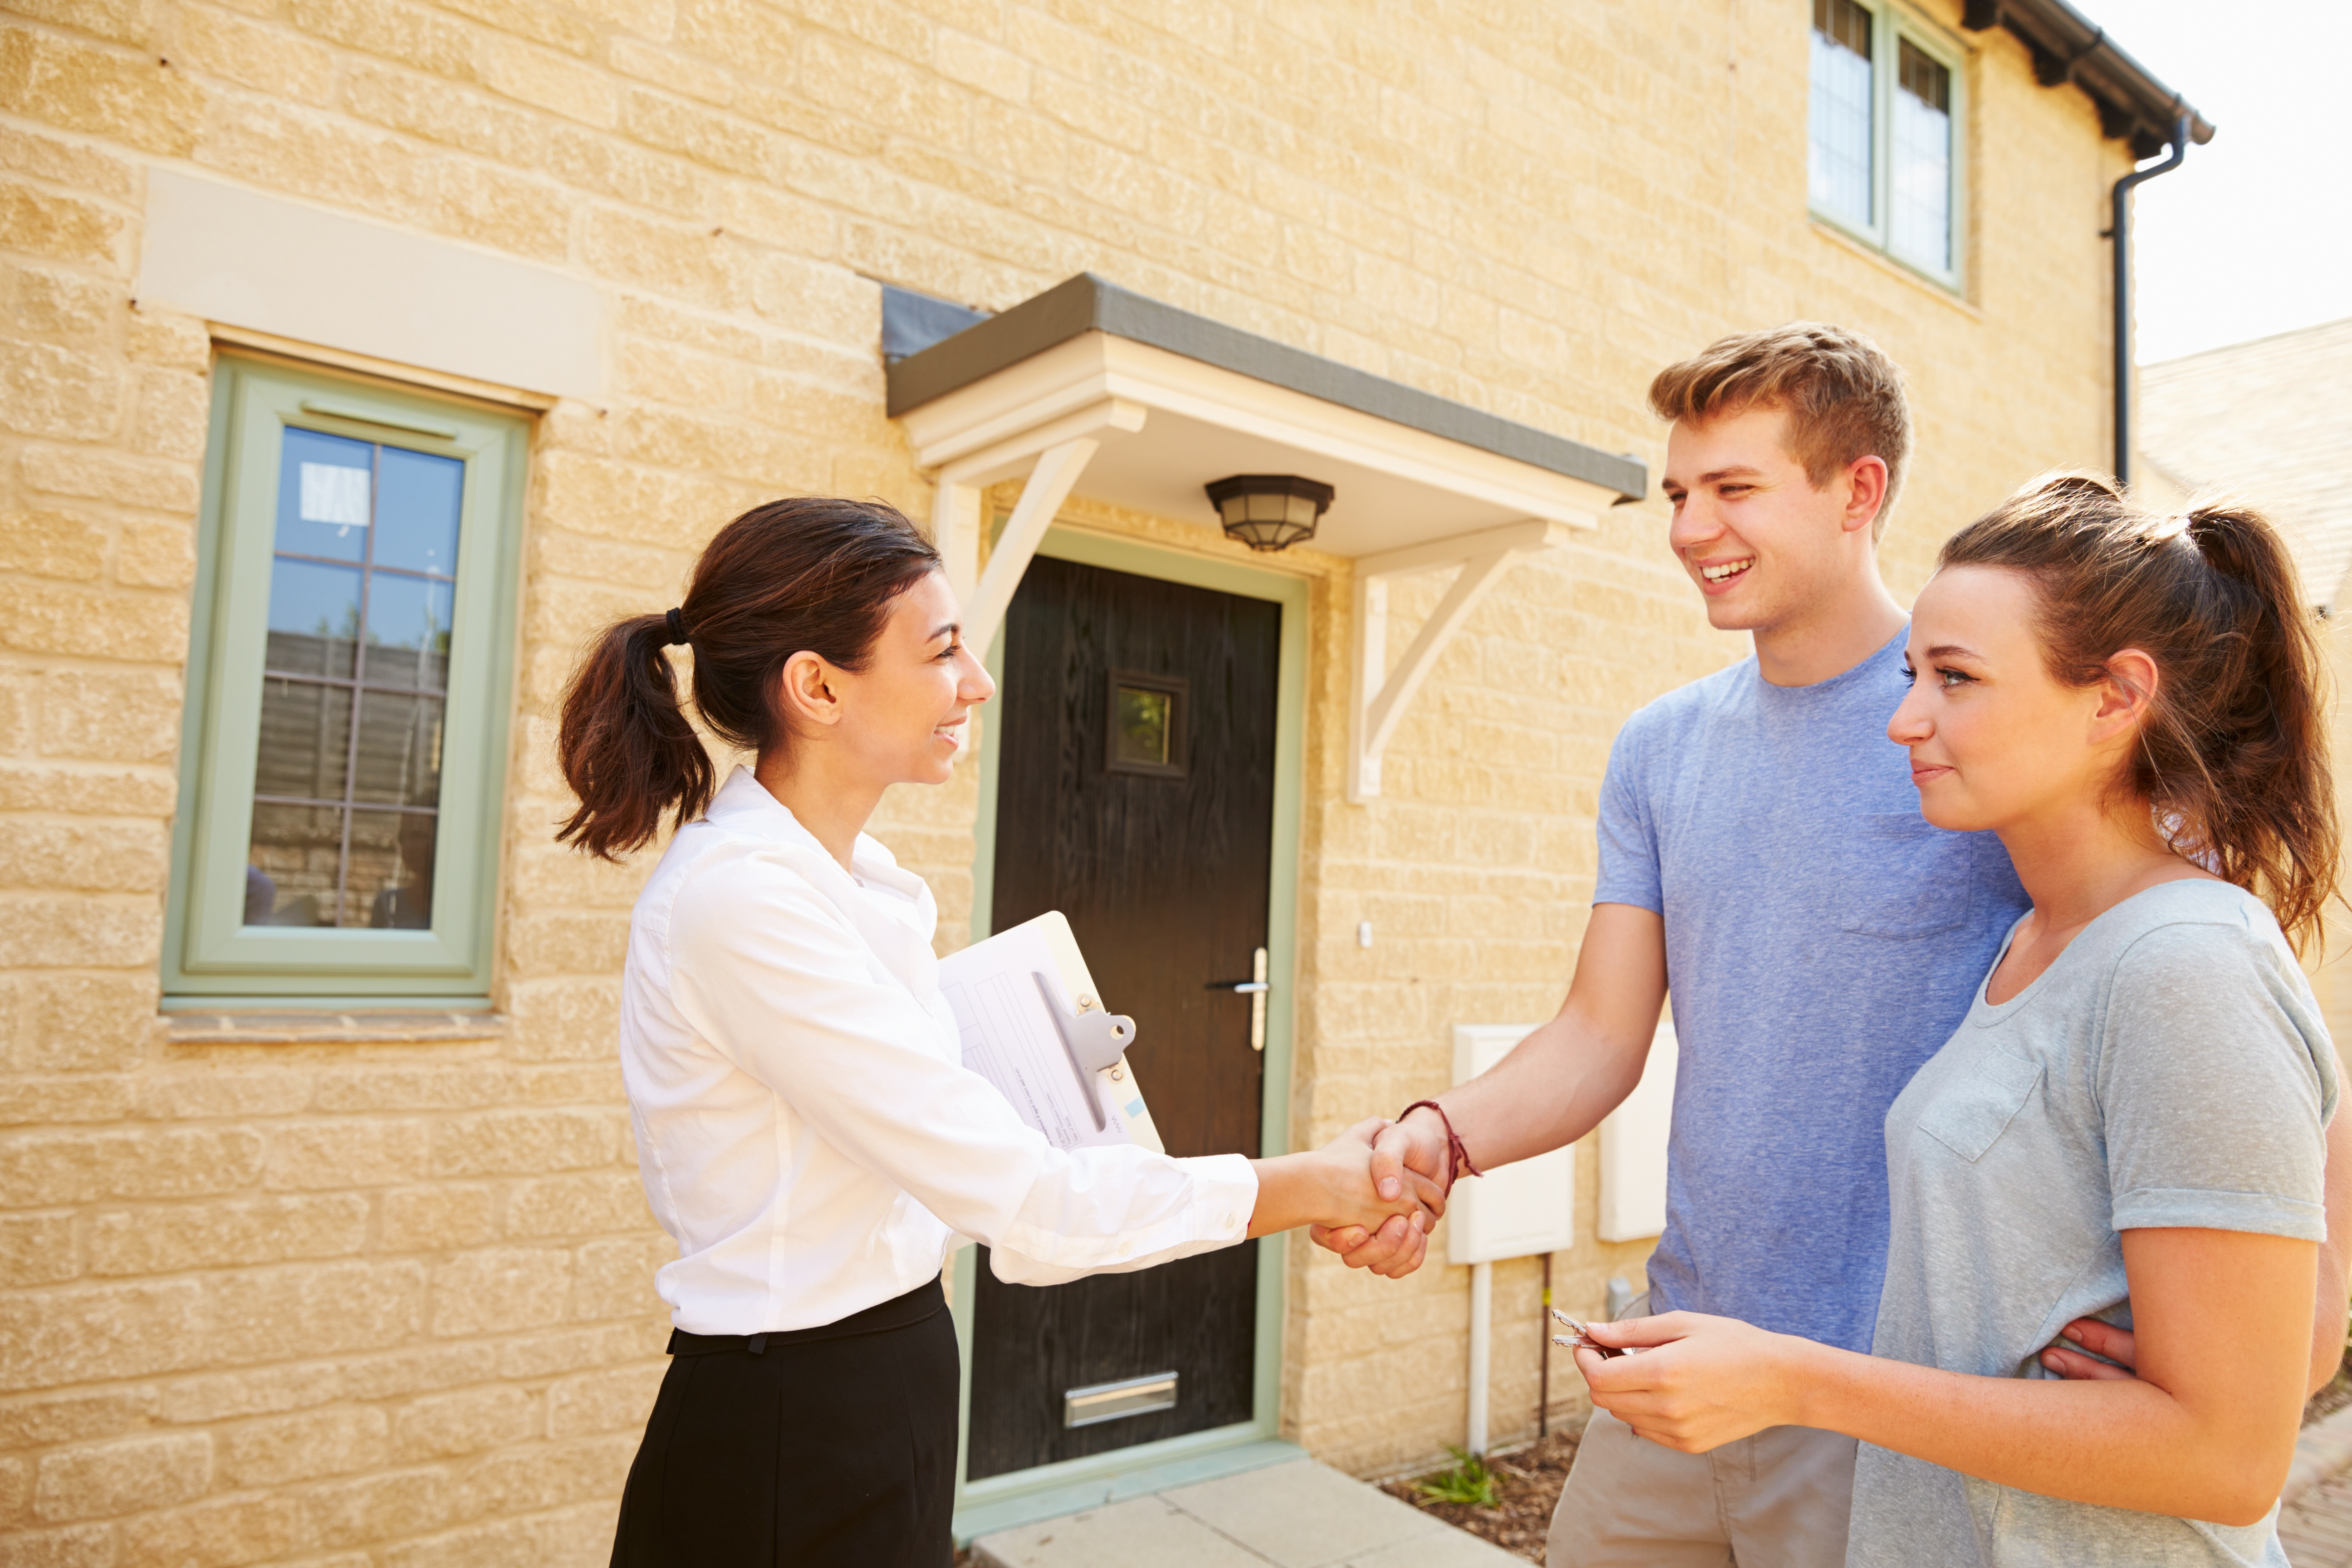 bigstock-Real-estate-agent-shaking-hand-102025619-1.jpg